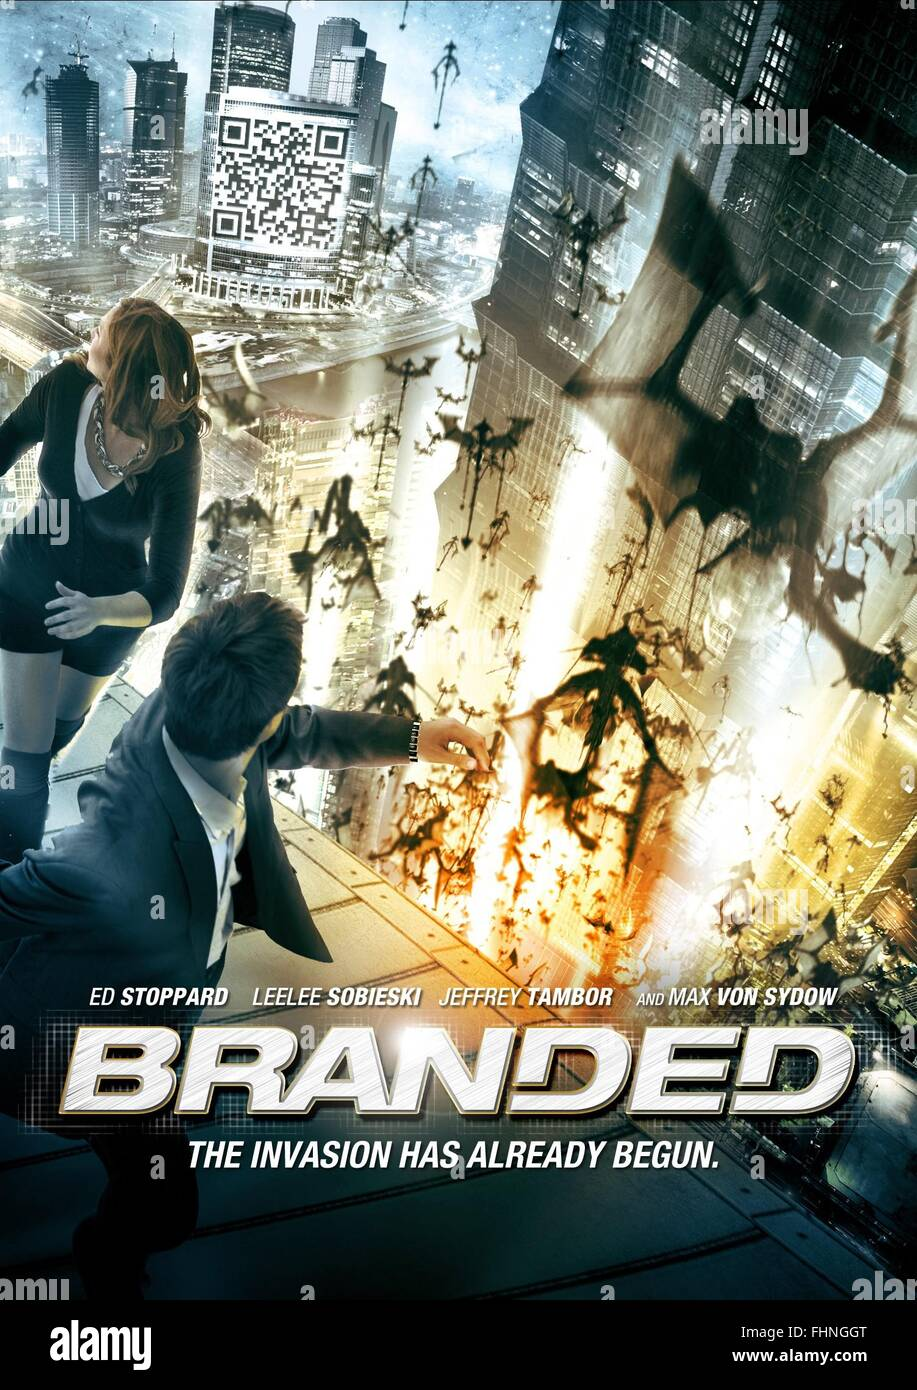 MOVIE POSTER BRANDED (2012) - Stock Image